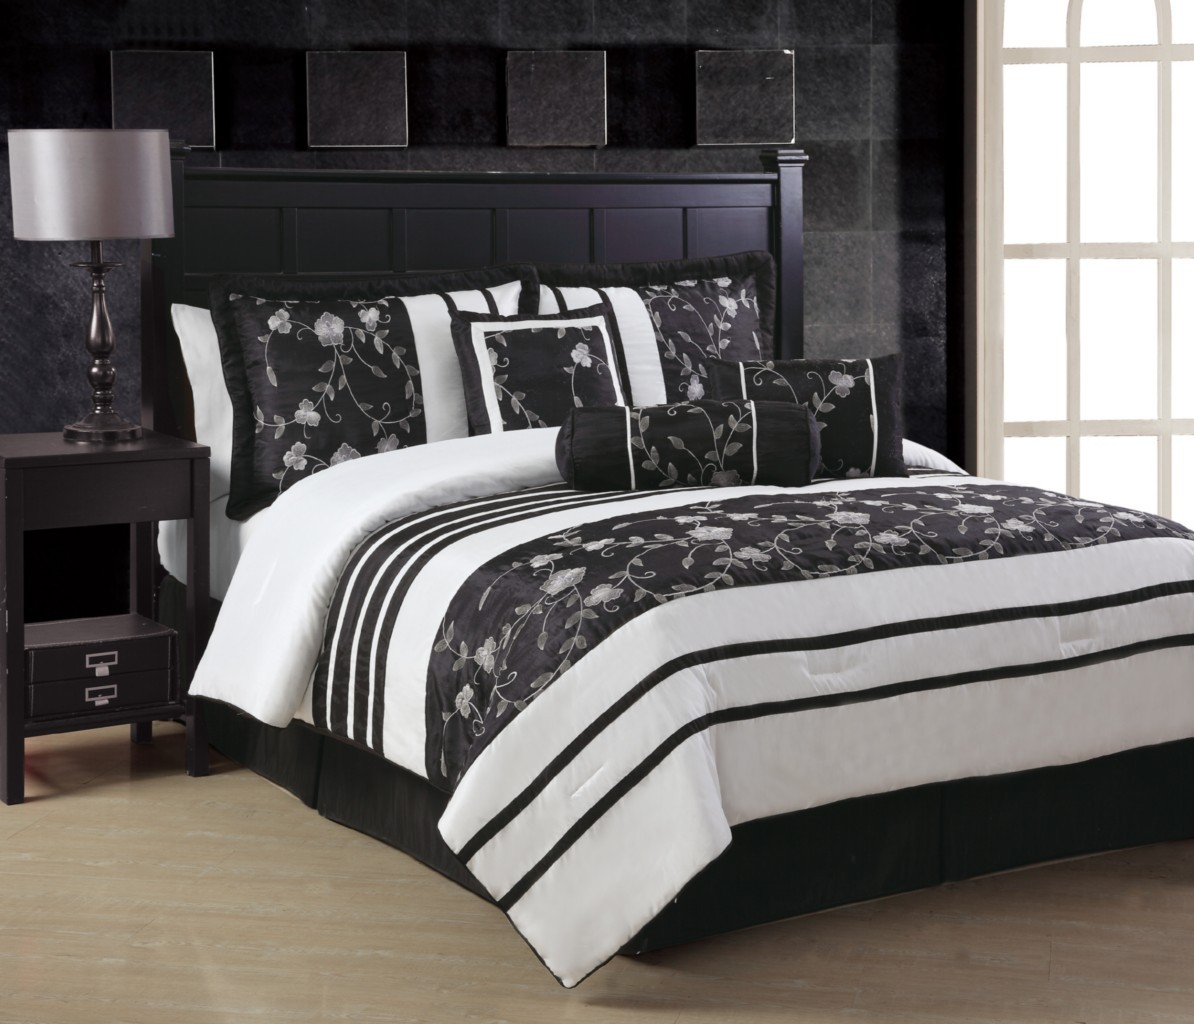 Ava White Black Embroidery King Queen Comforter Set Or Matching Curtain Set Ebay